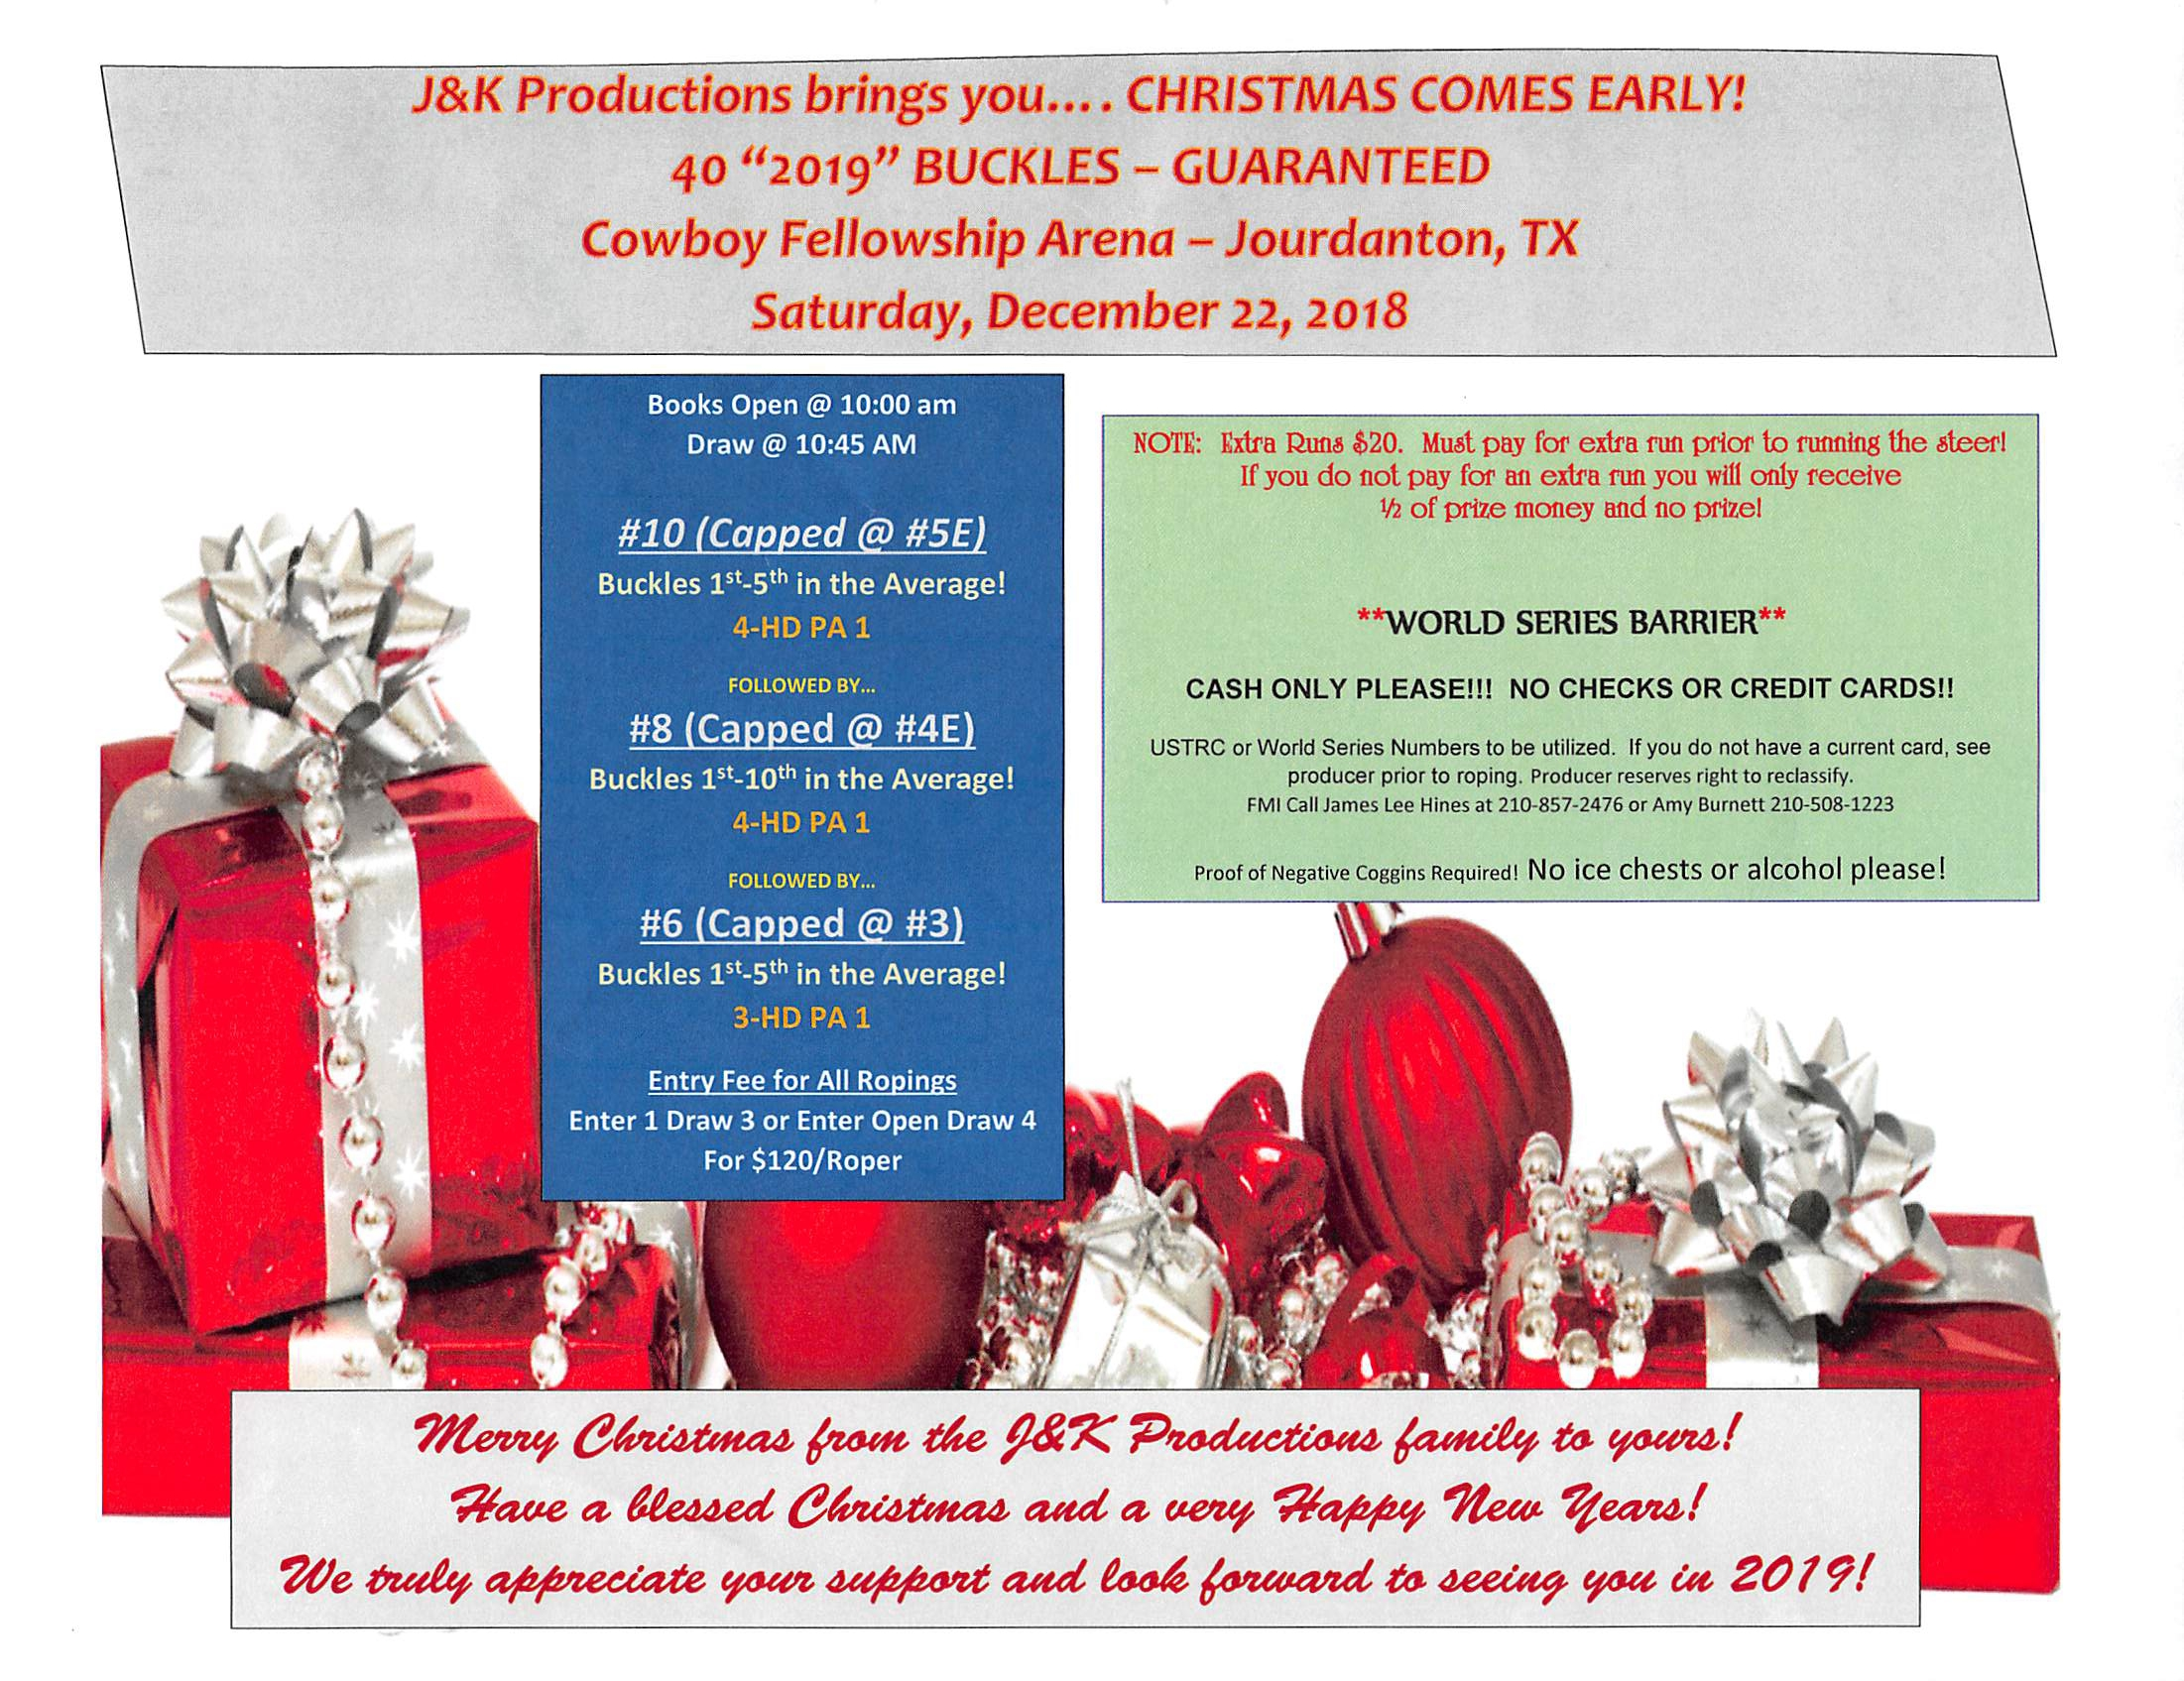 J&K Productions - Christmas Comes Early - 40 2019 Buckles - #10, #8 ...